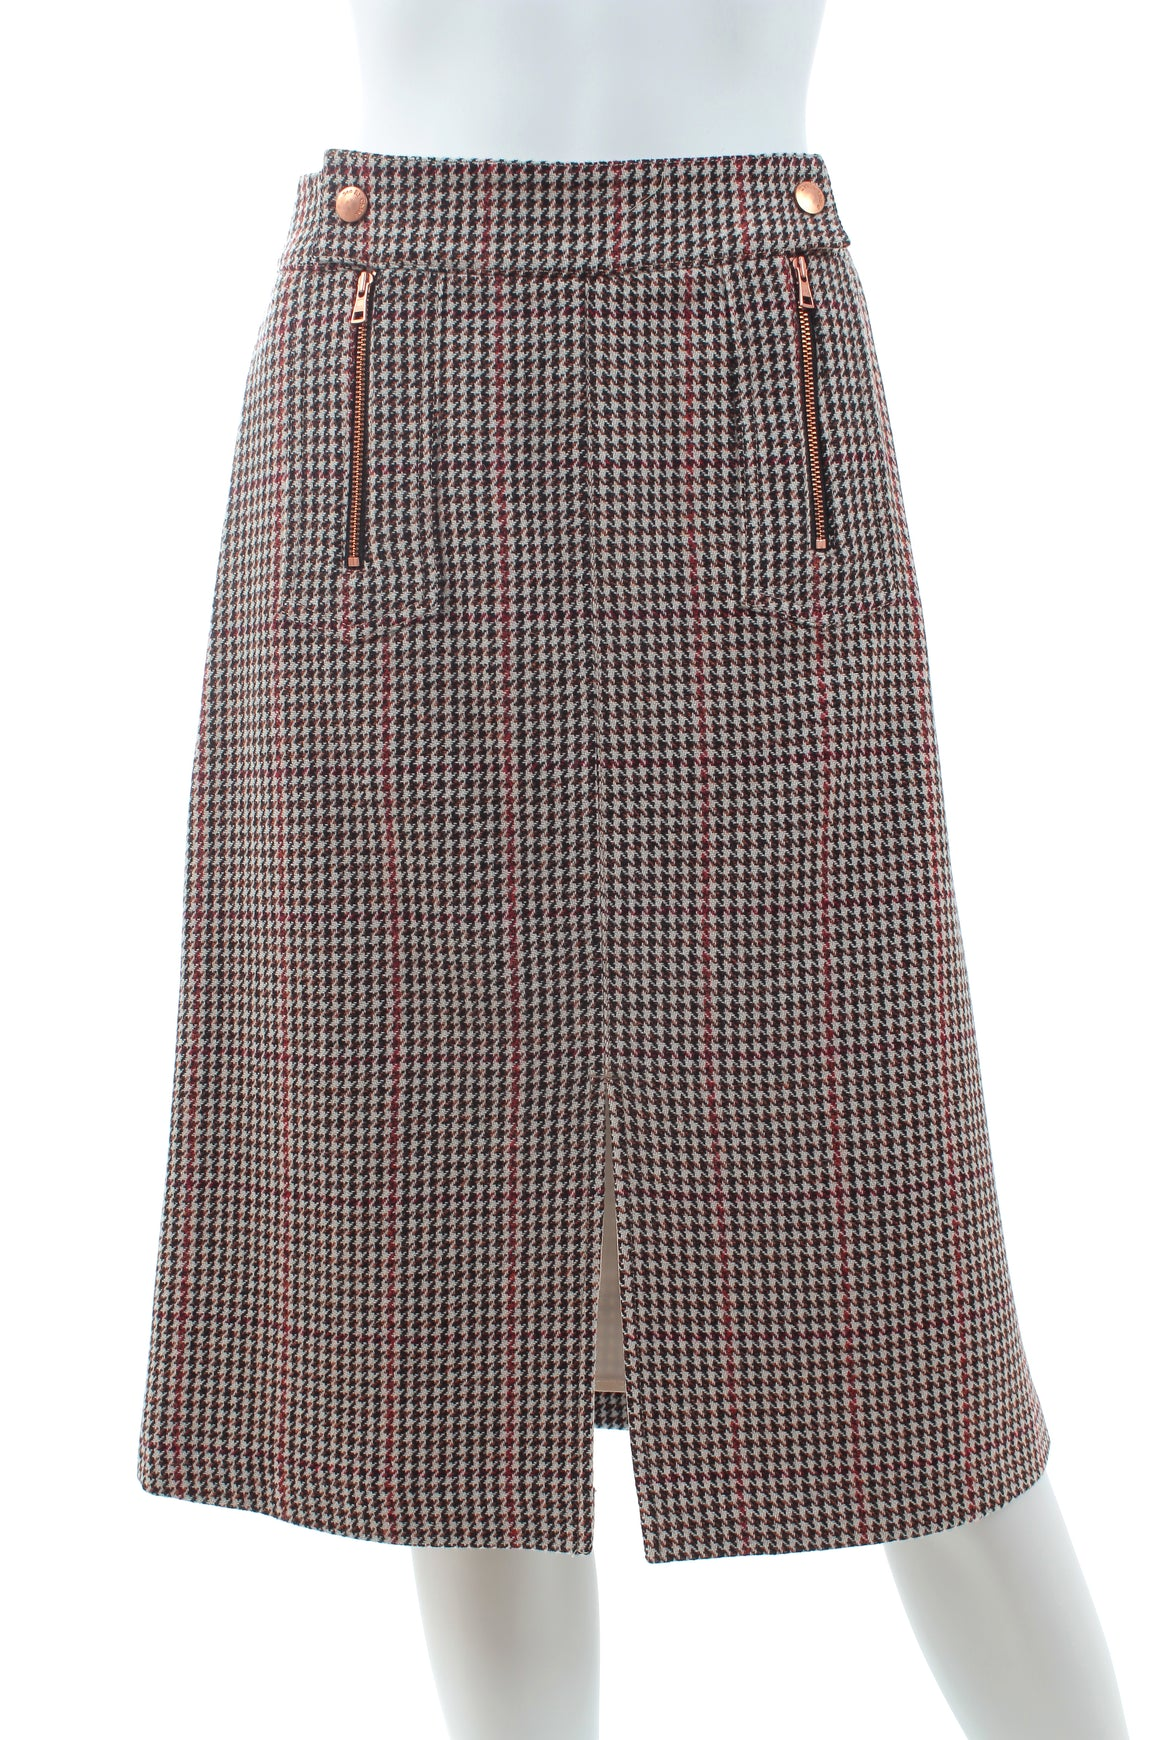 See by Chloe Houndstooth Wool-Blend Mid-Length A-Line Skirt